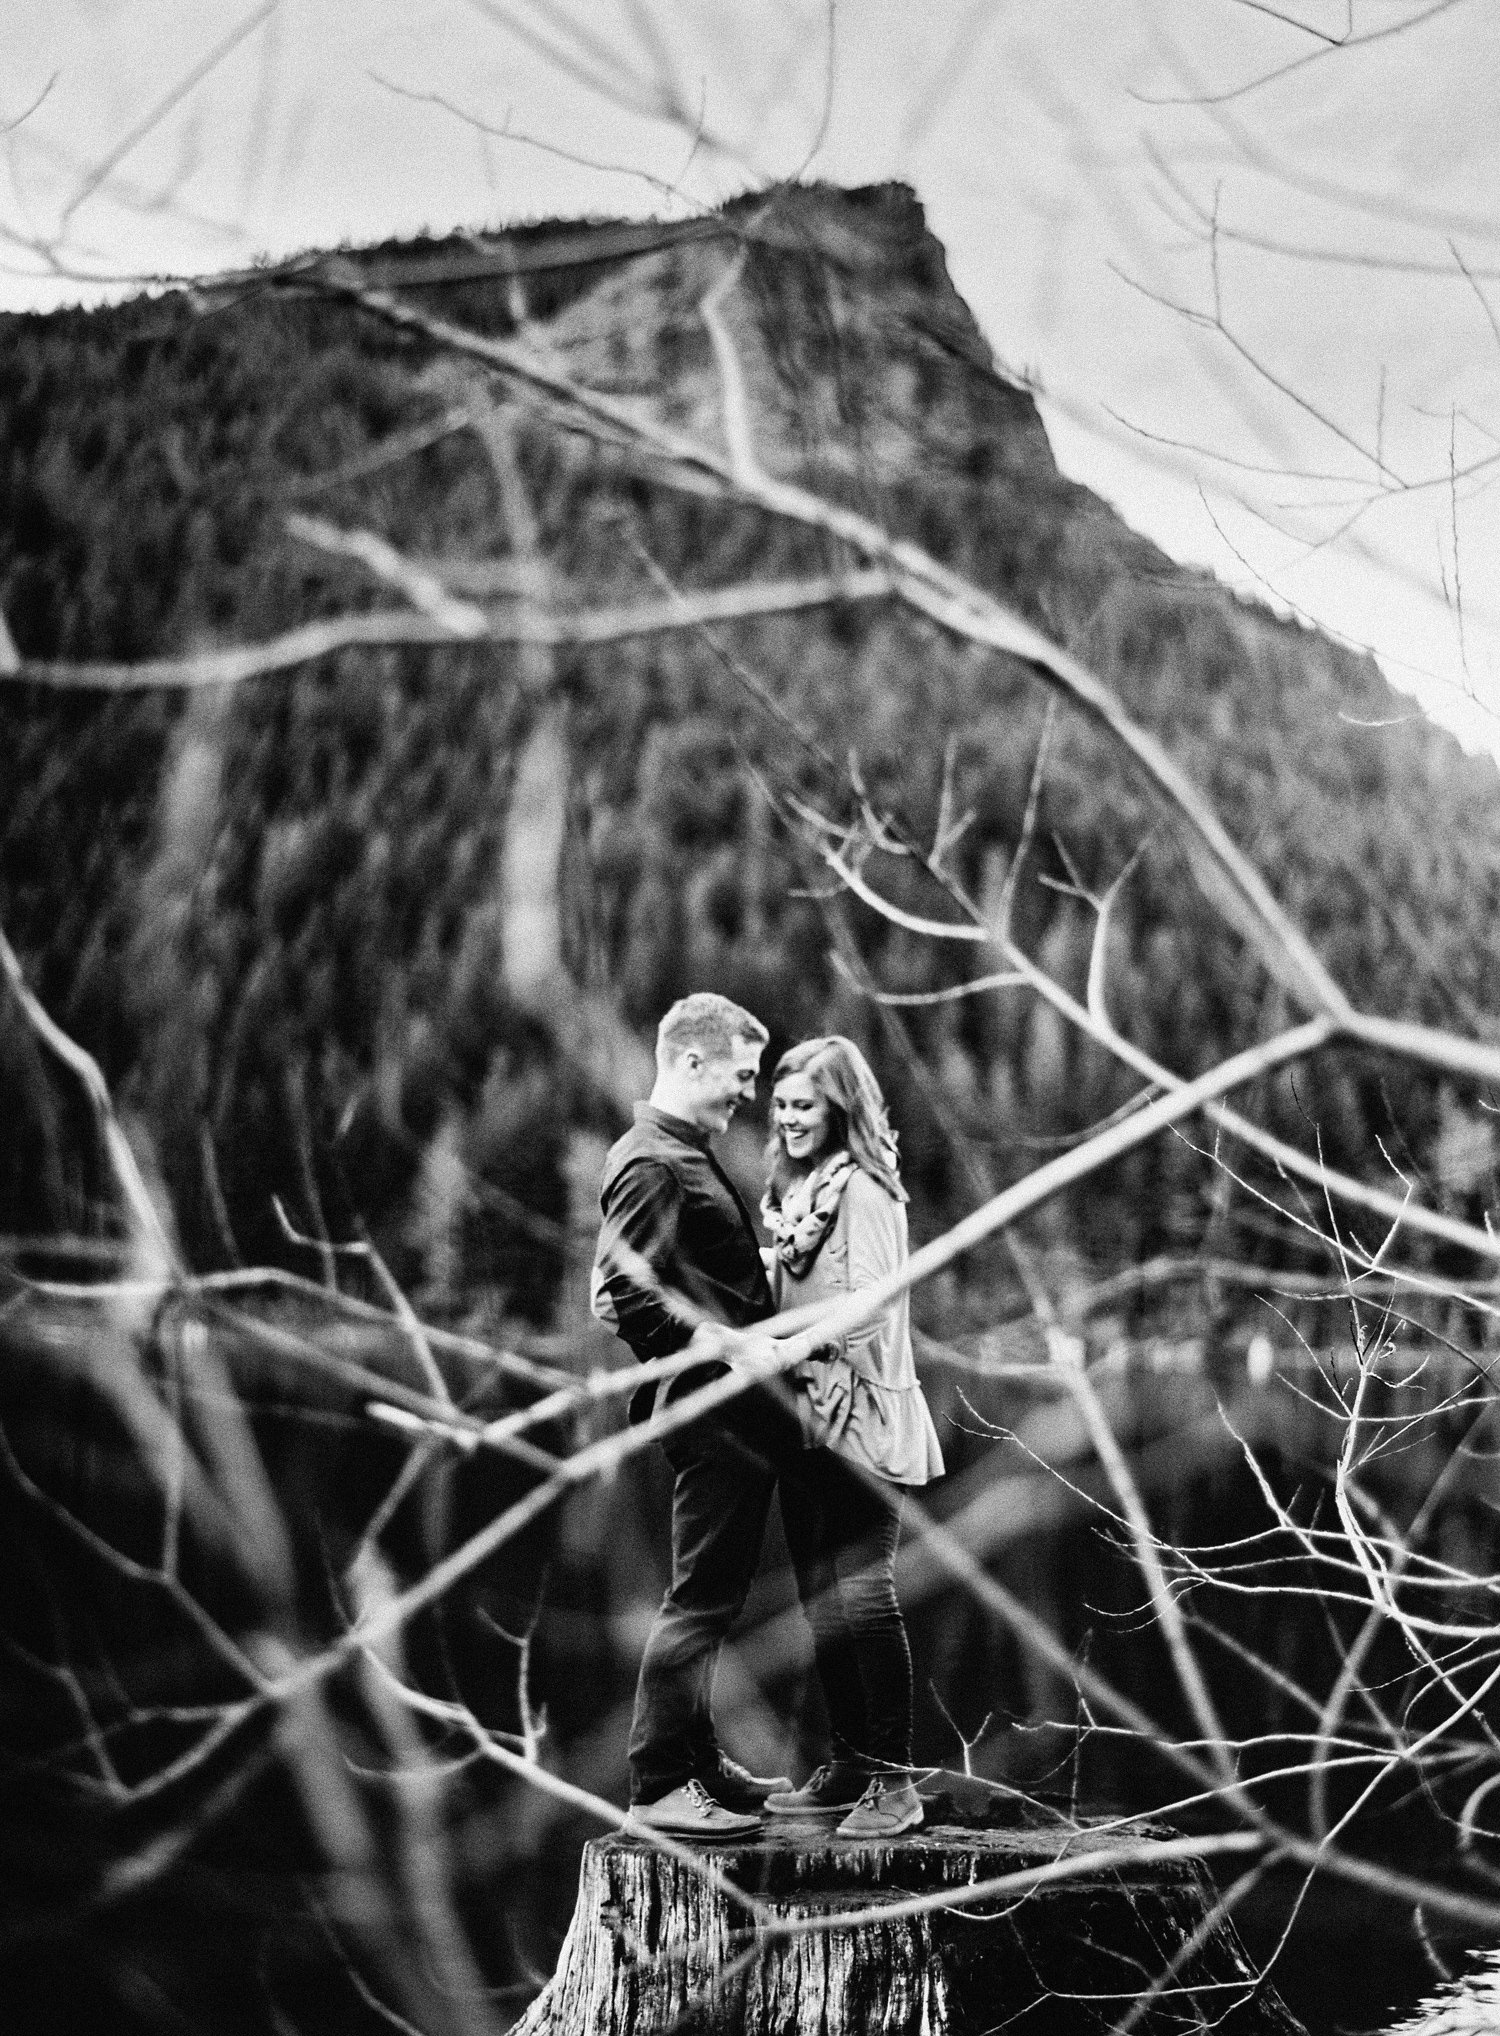 005-snoqualmie-mountain-engagement-session-seattle-film-wedding-photographer-ryan-flynn.jpg